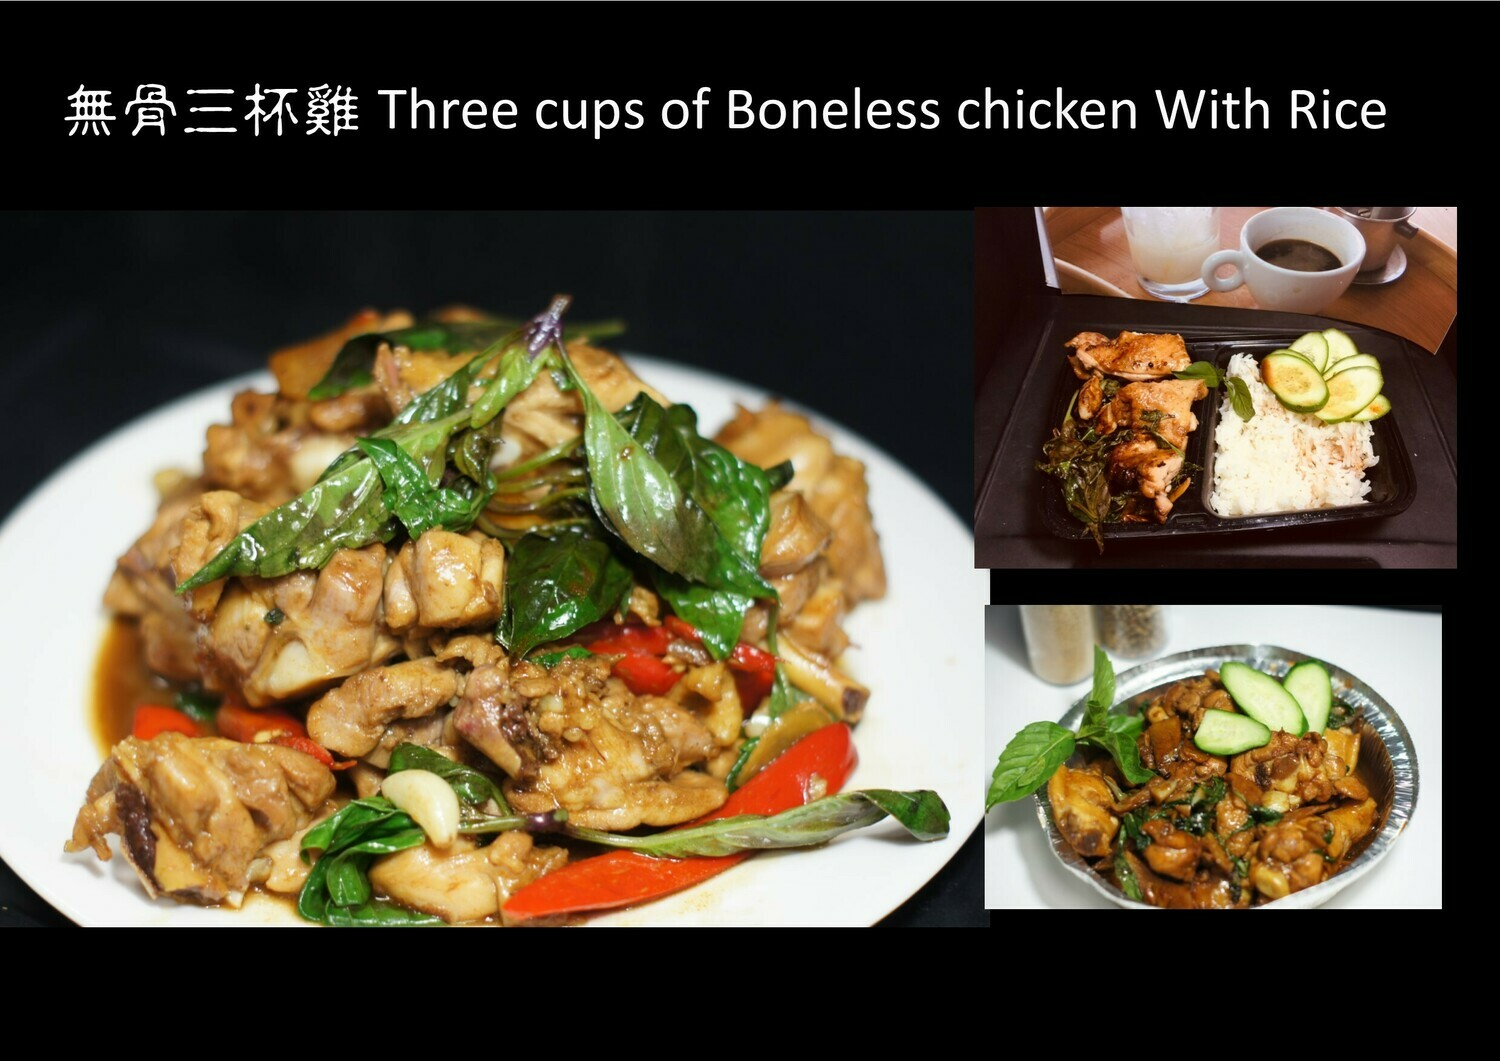 【喜甜】Three Cups Boneless Chicken with Rice  无骨三杯鸡饭(Closed Monday)